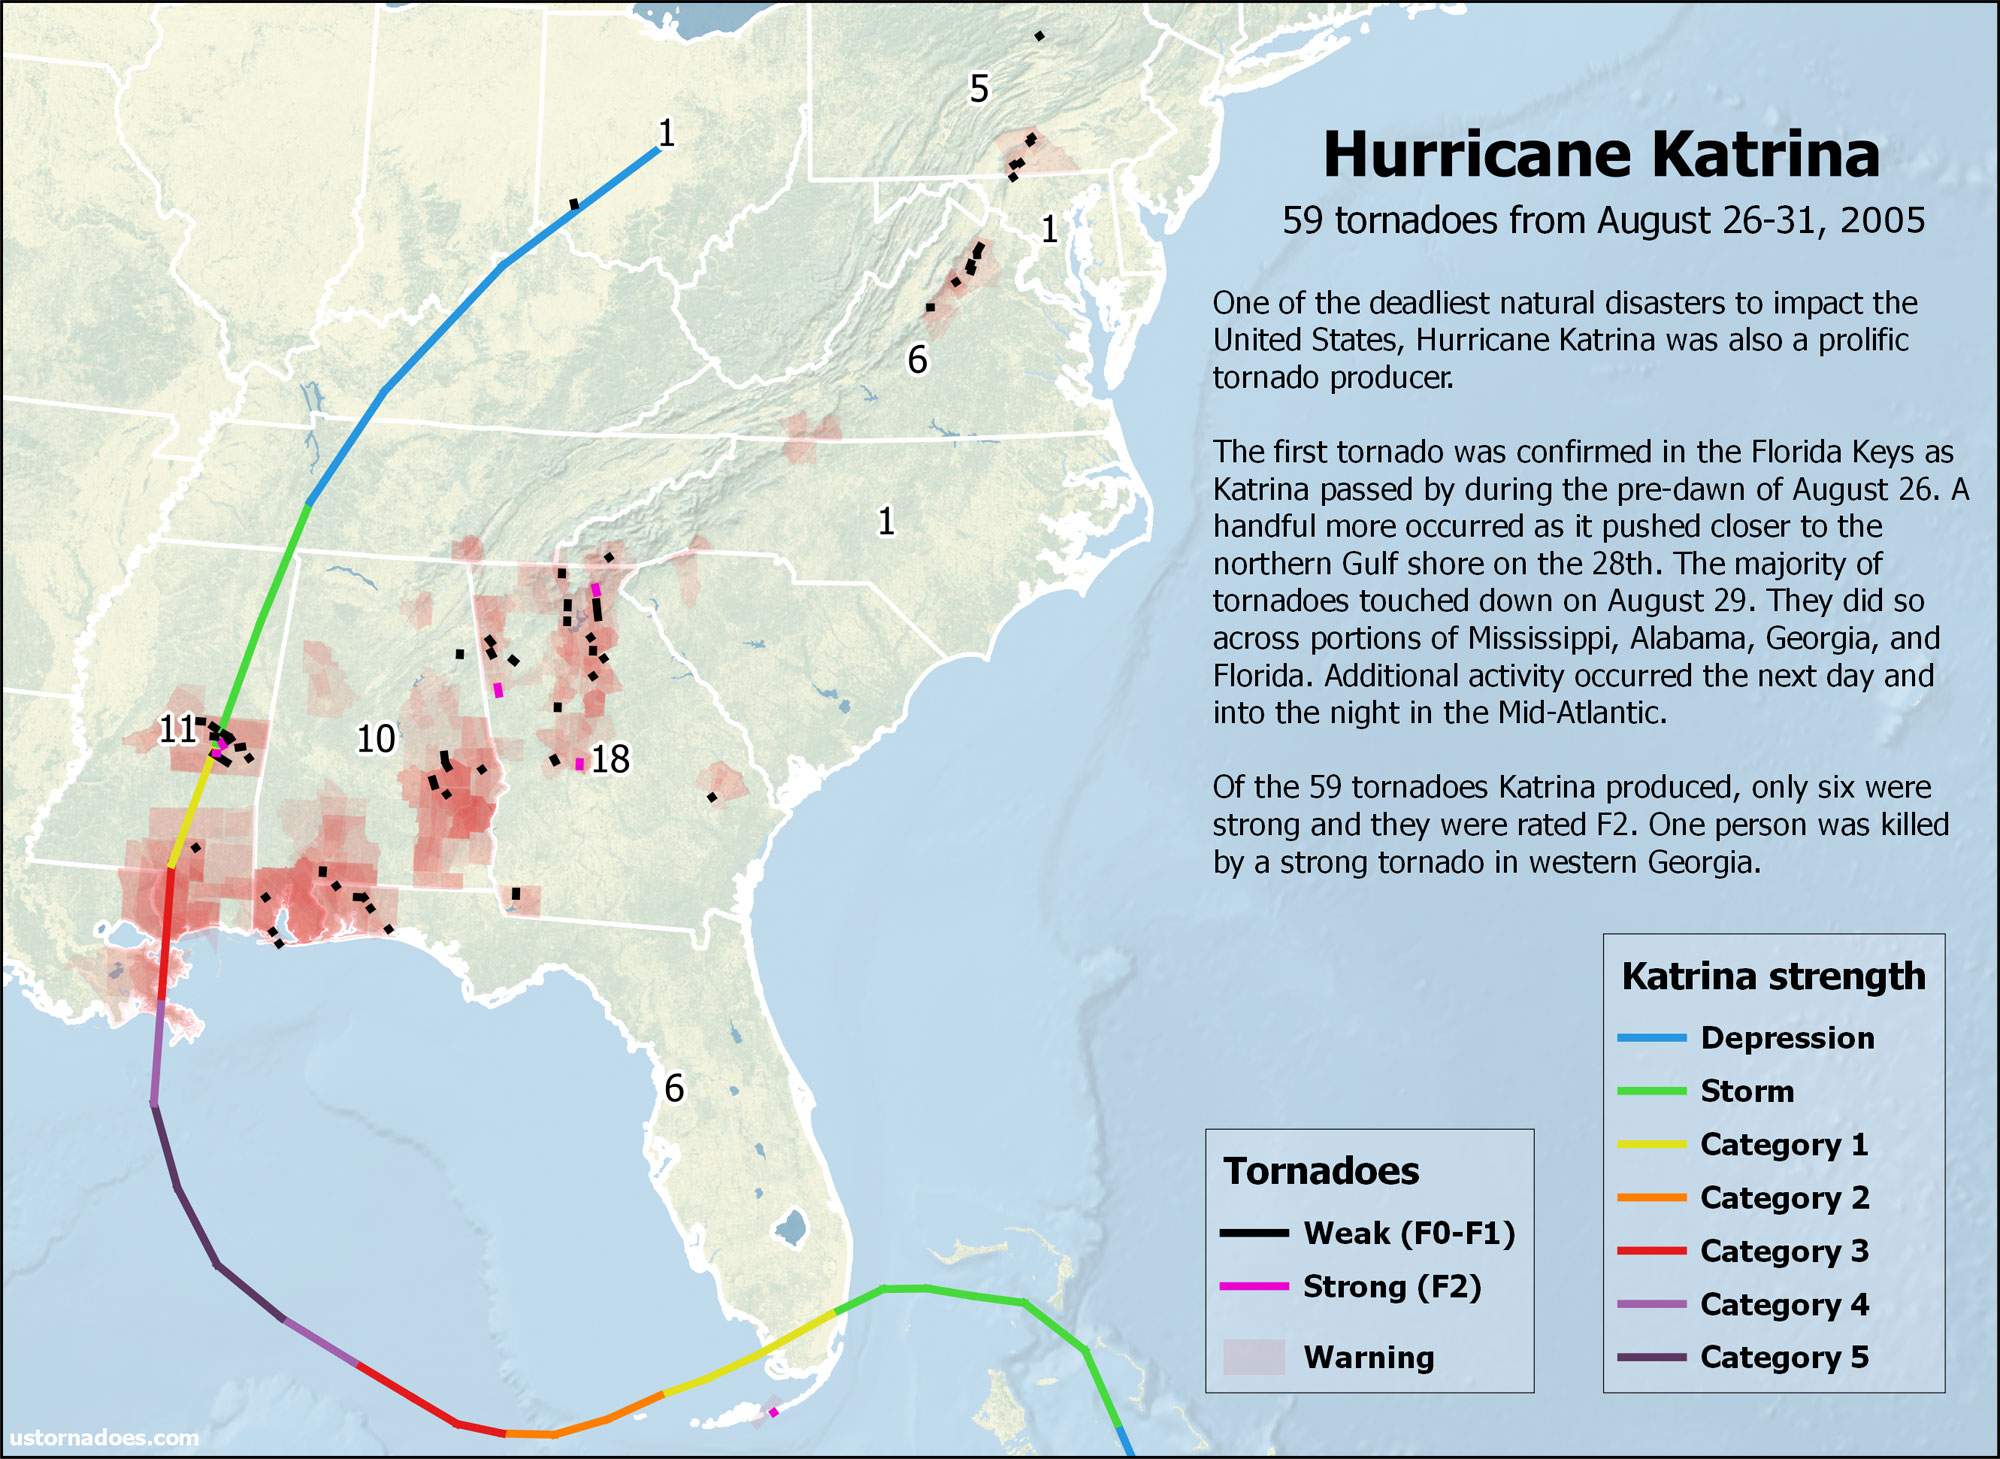 Hurricane Katrina New Orleans Map.Hurricane Katrina Also Caused A Tornado Outbreak U S Tornadoes